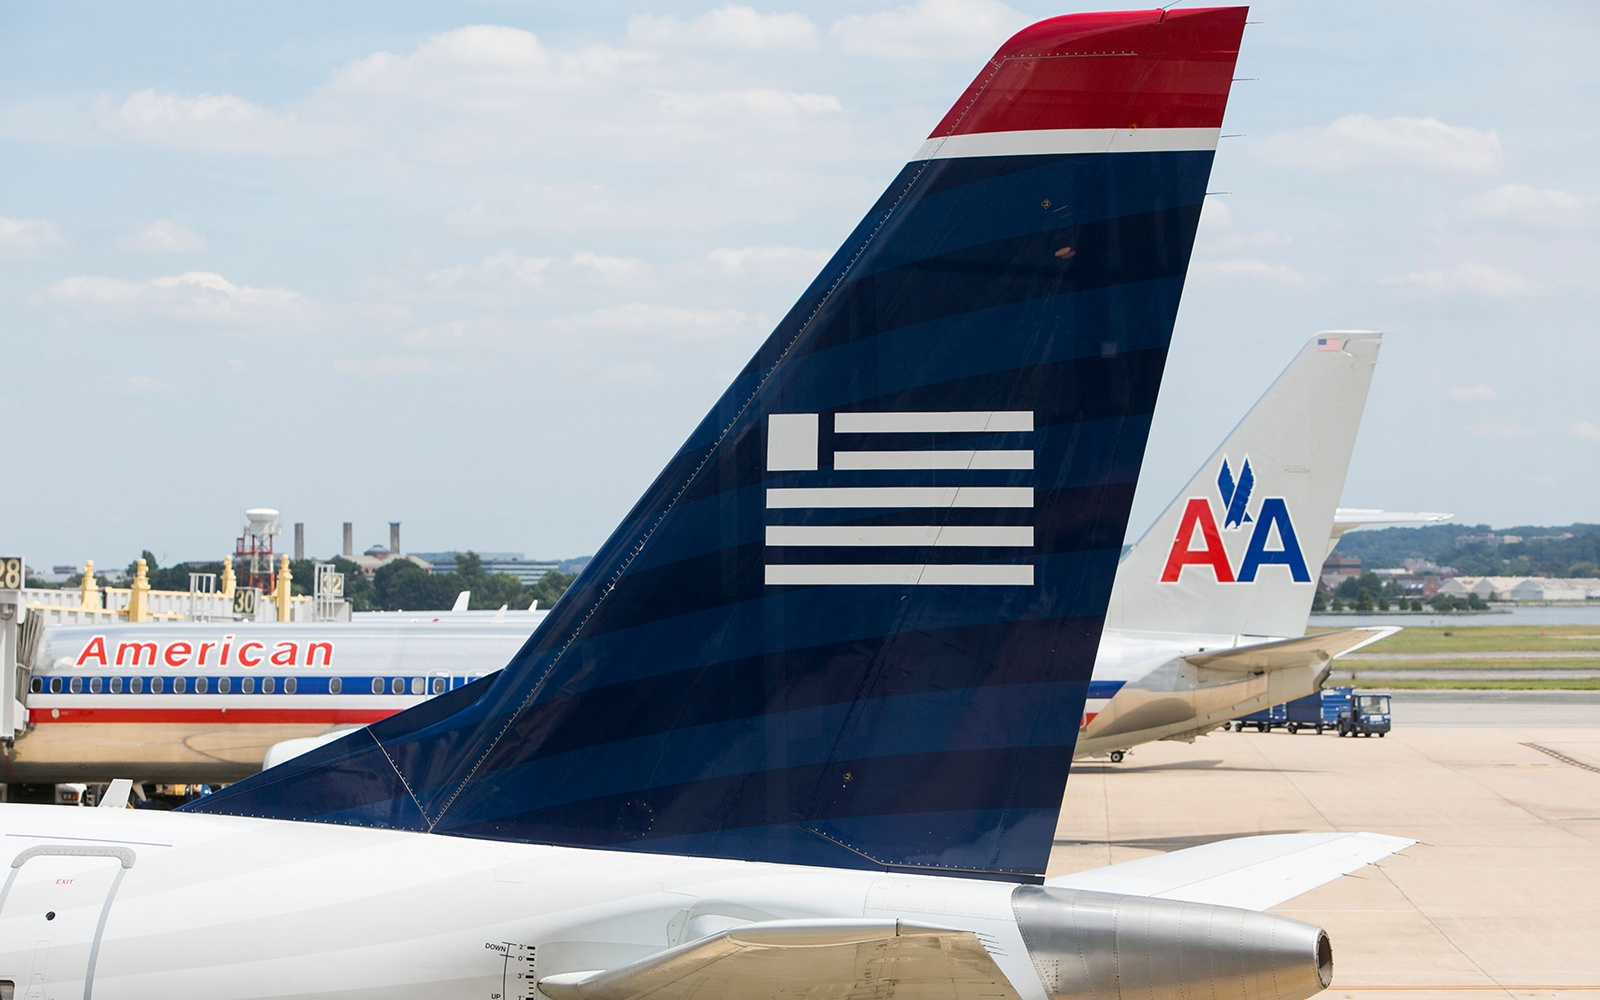 American Airlines Us Airways Frequent Flyer Merger